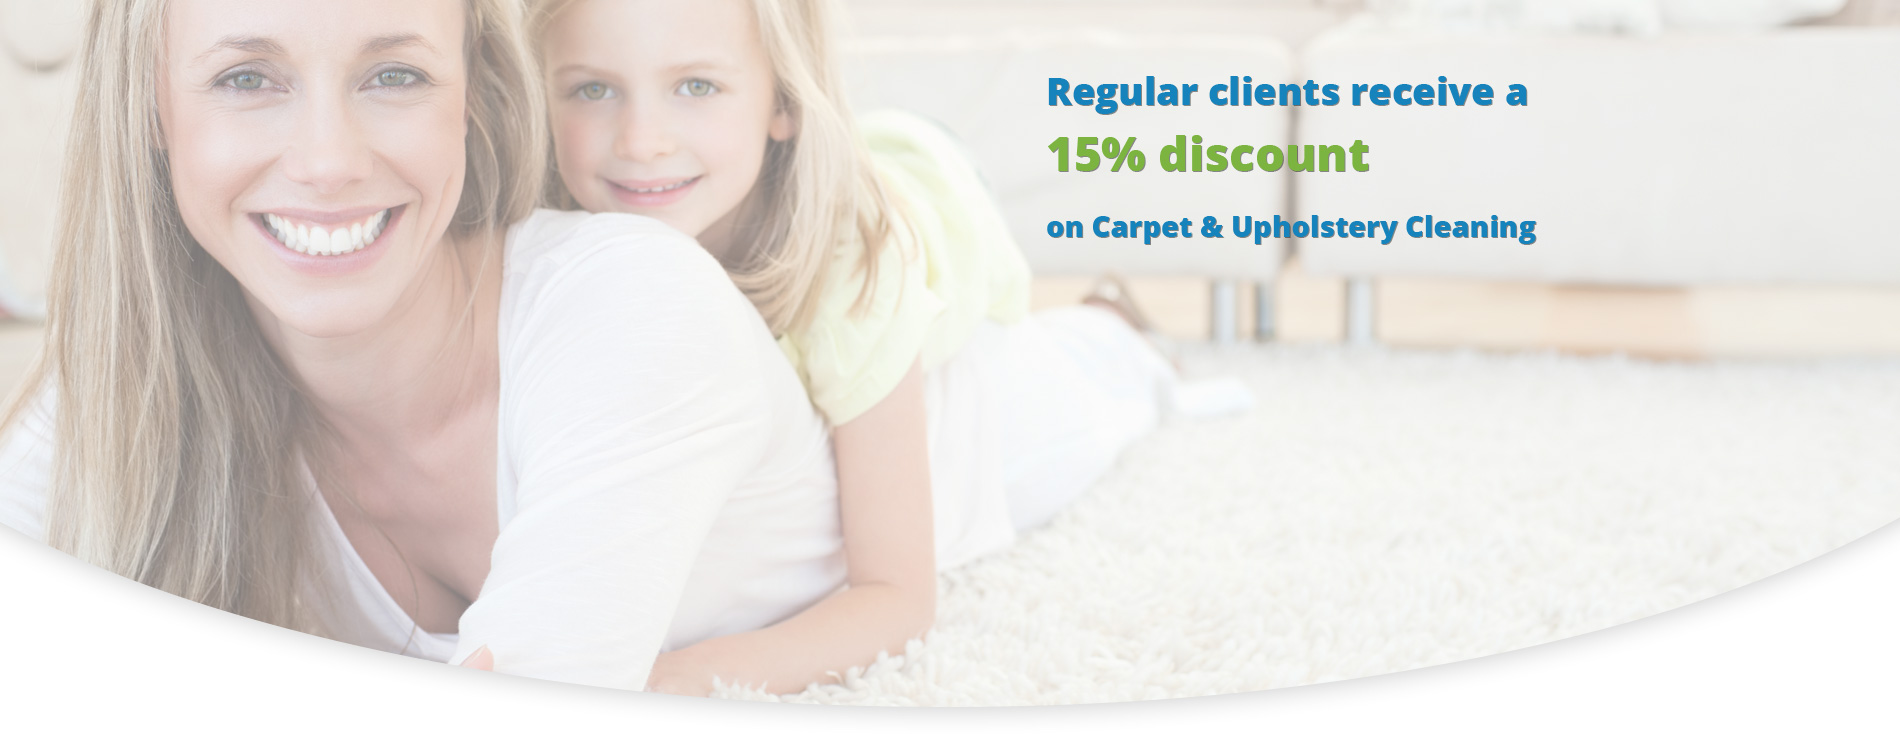 Regular clients receive a 15% discount on Carpet & Upholstery Cleaning